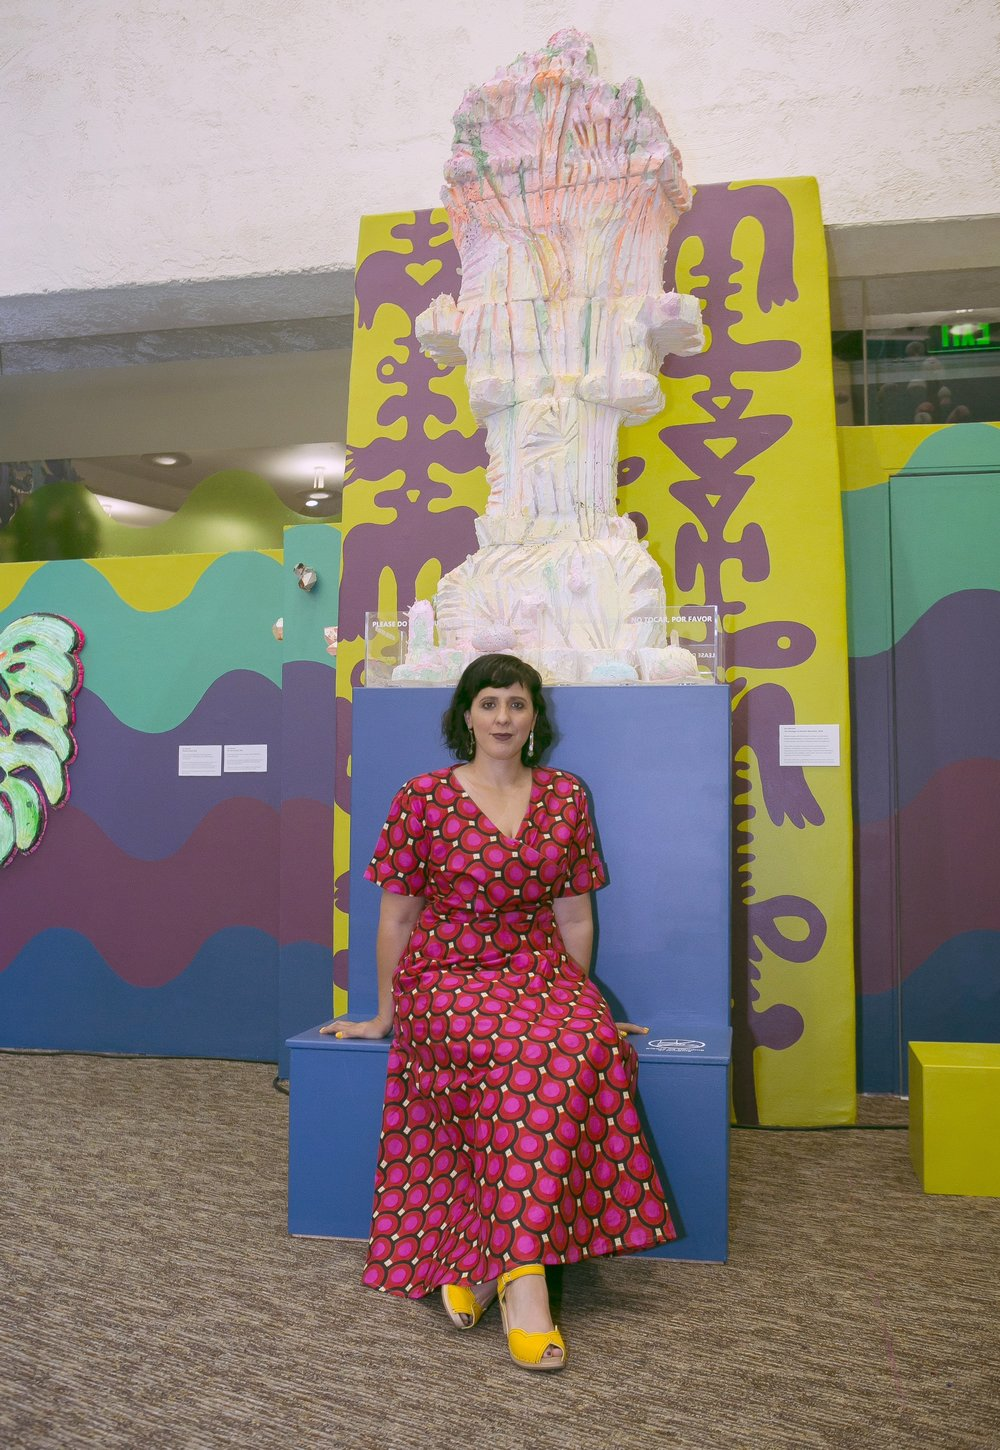 Photo by Chris Loomis   Commissioned by Scottsdale Arts at the Scottsdale Public Library at the Civic Centre, 2018.  Here I am sitting in front of  The Geology of Mount Sherbe t.